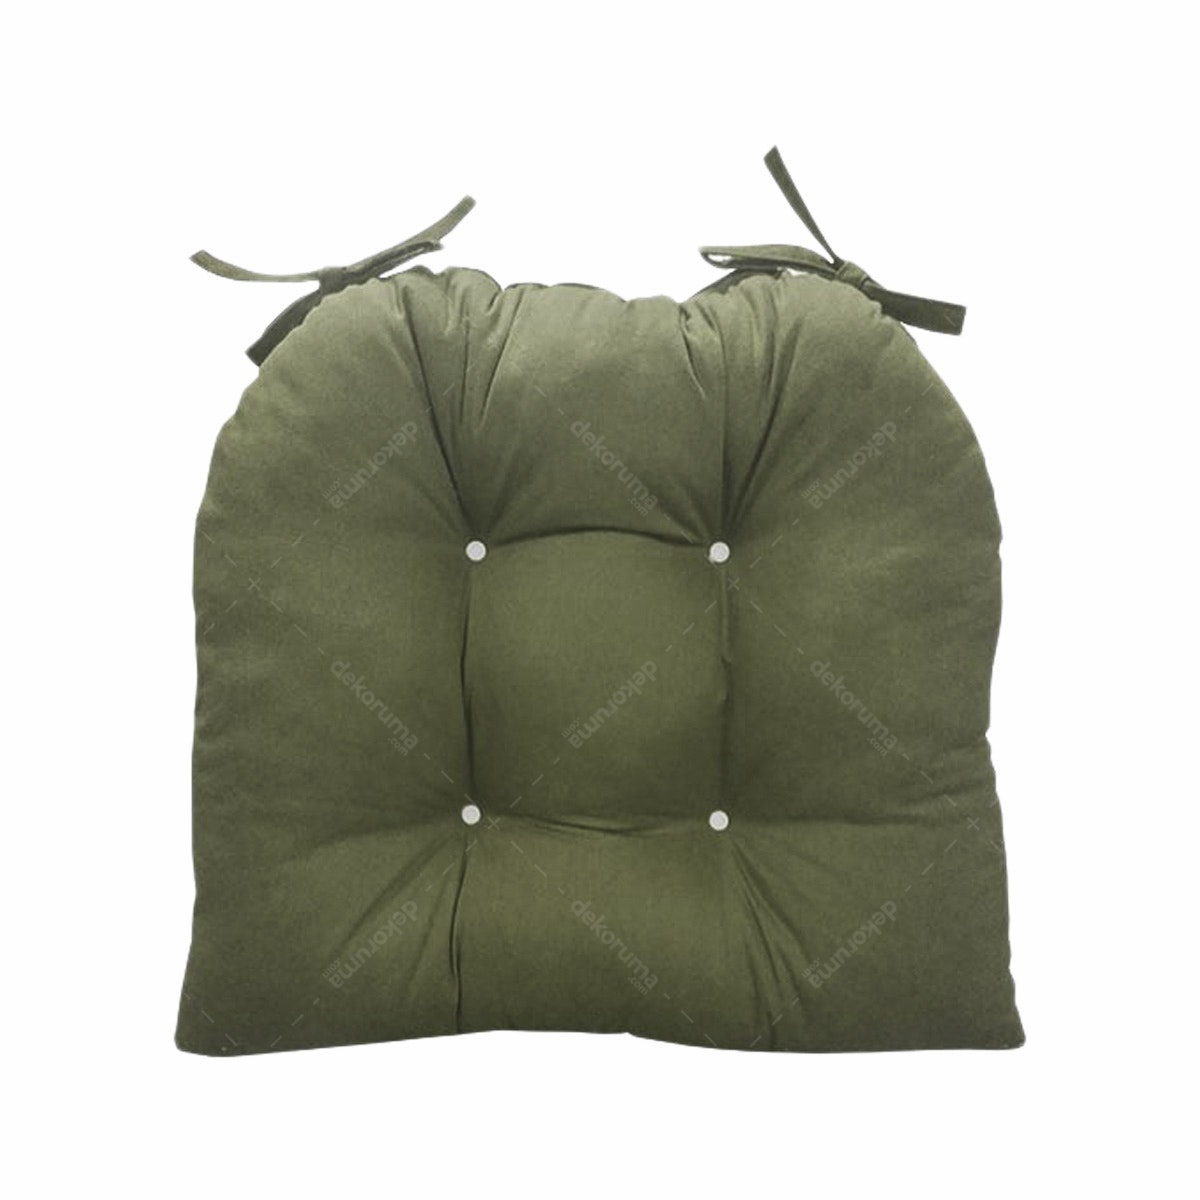 The Luxe Chairpad Brown